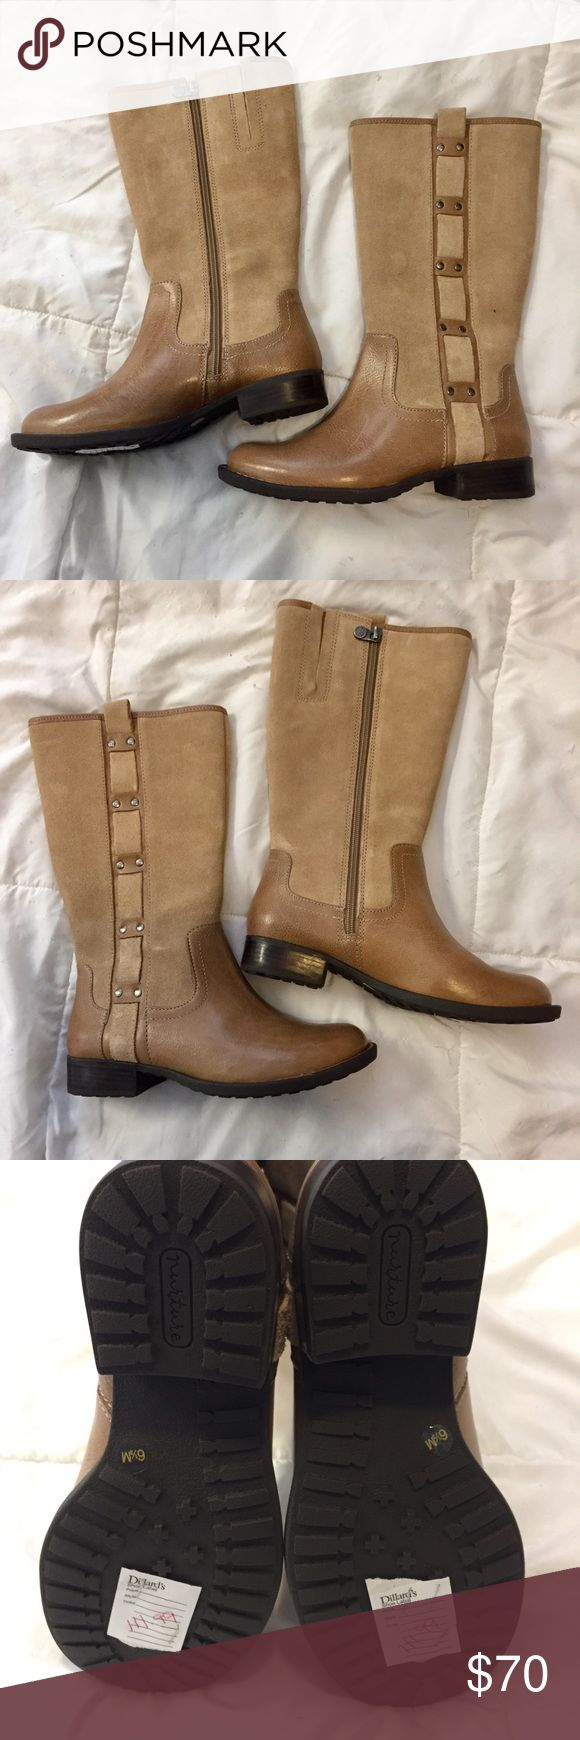 Nwt Boots Suede And Leather Boots Never Worn Very -4772